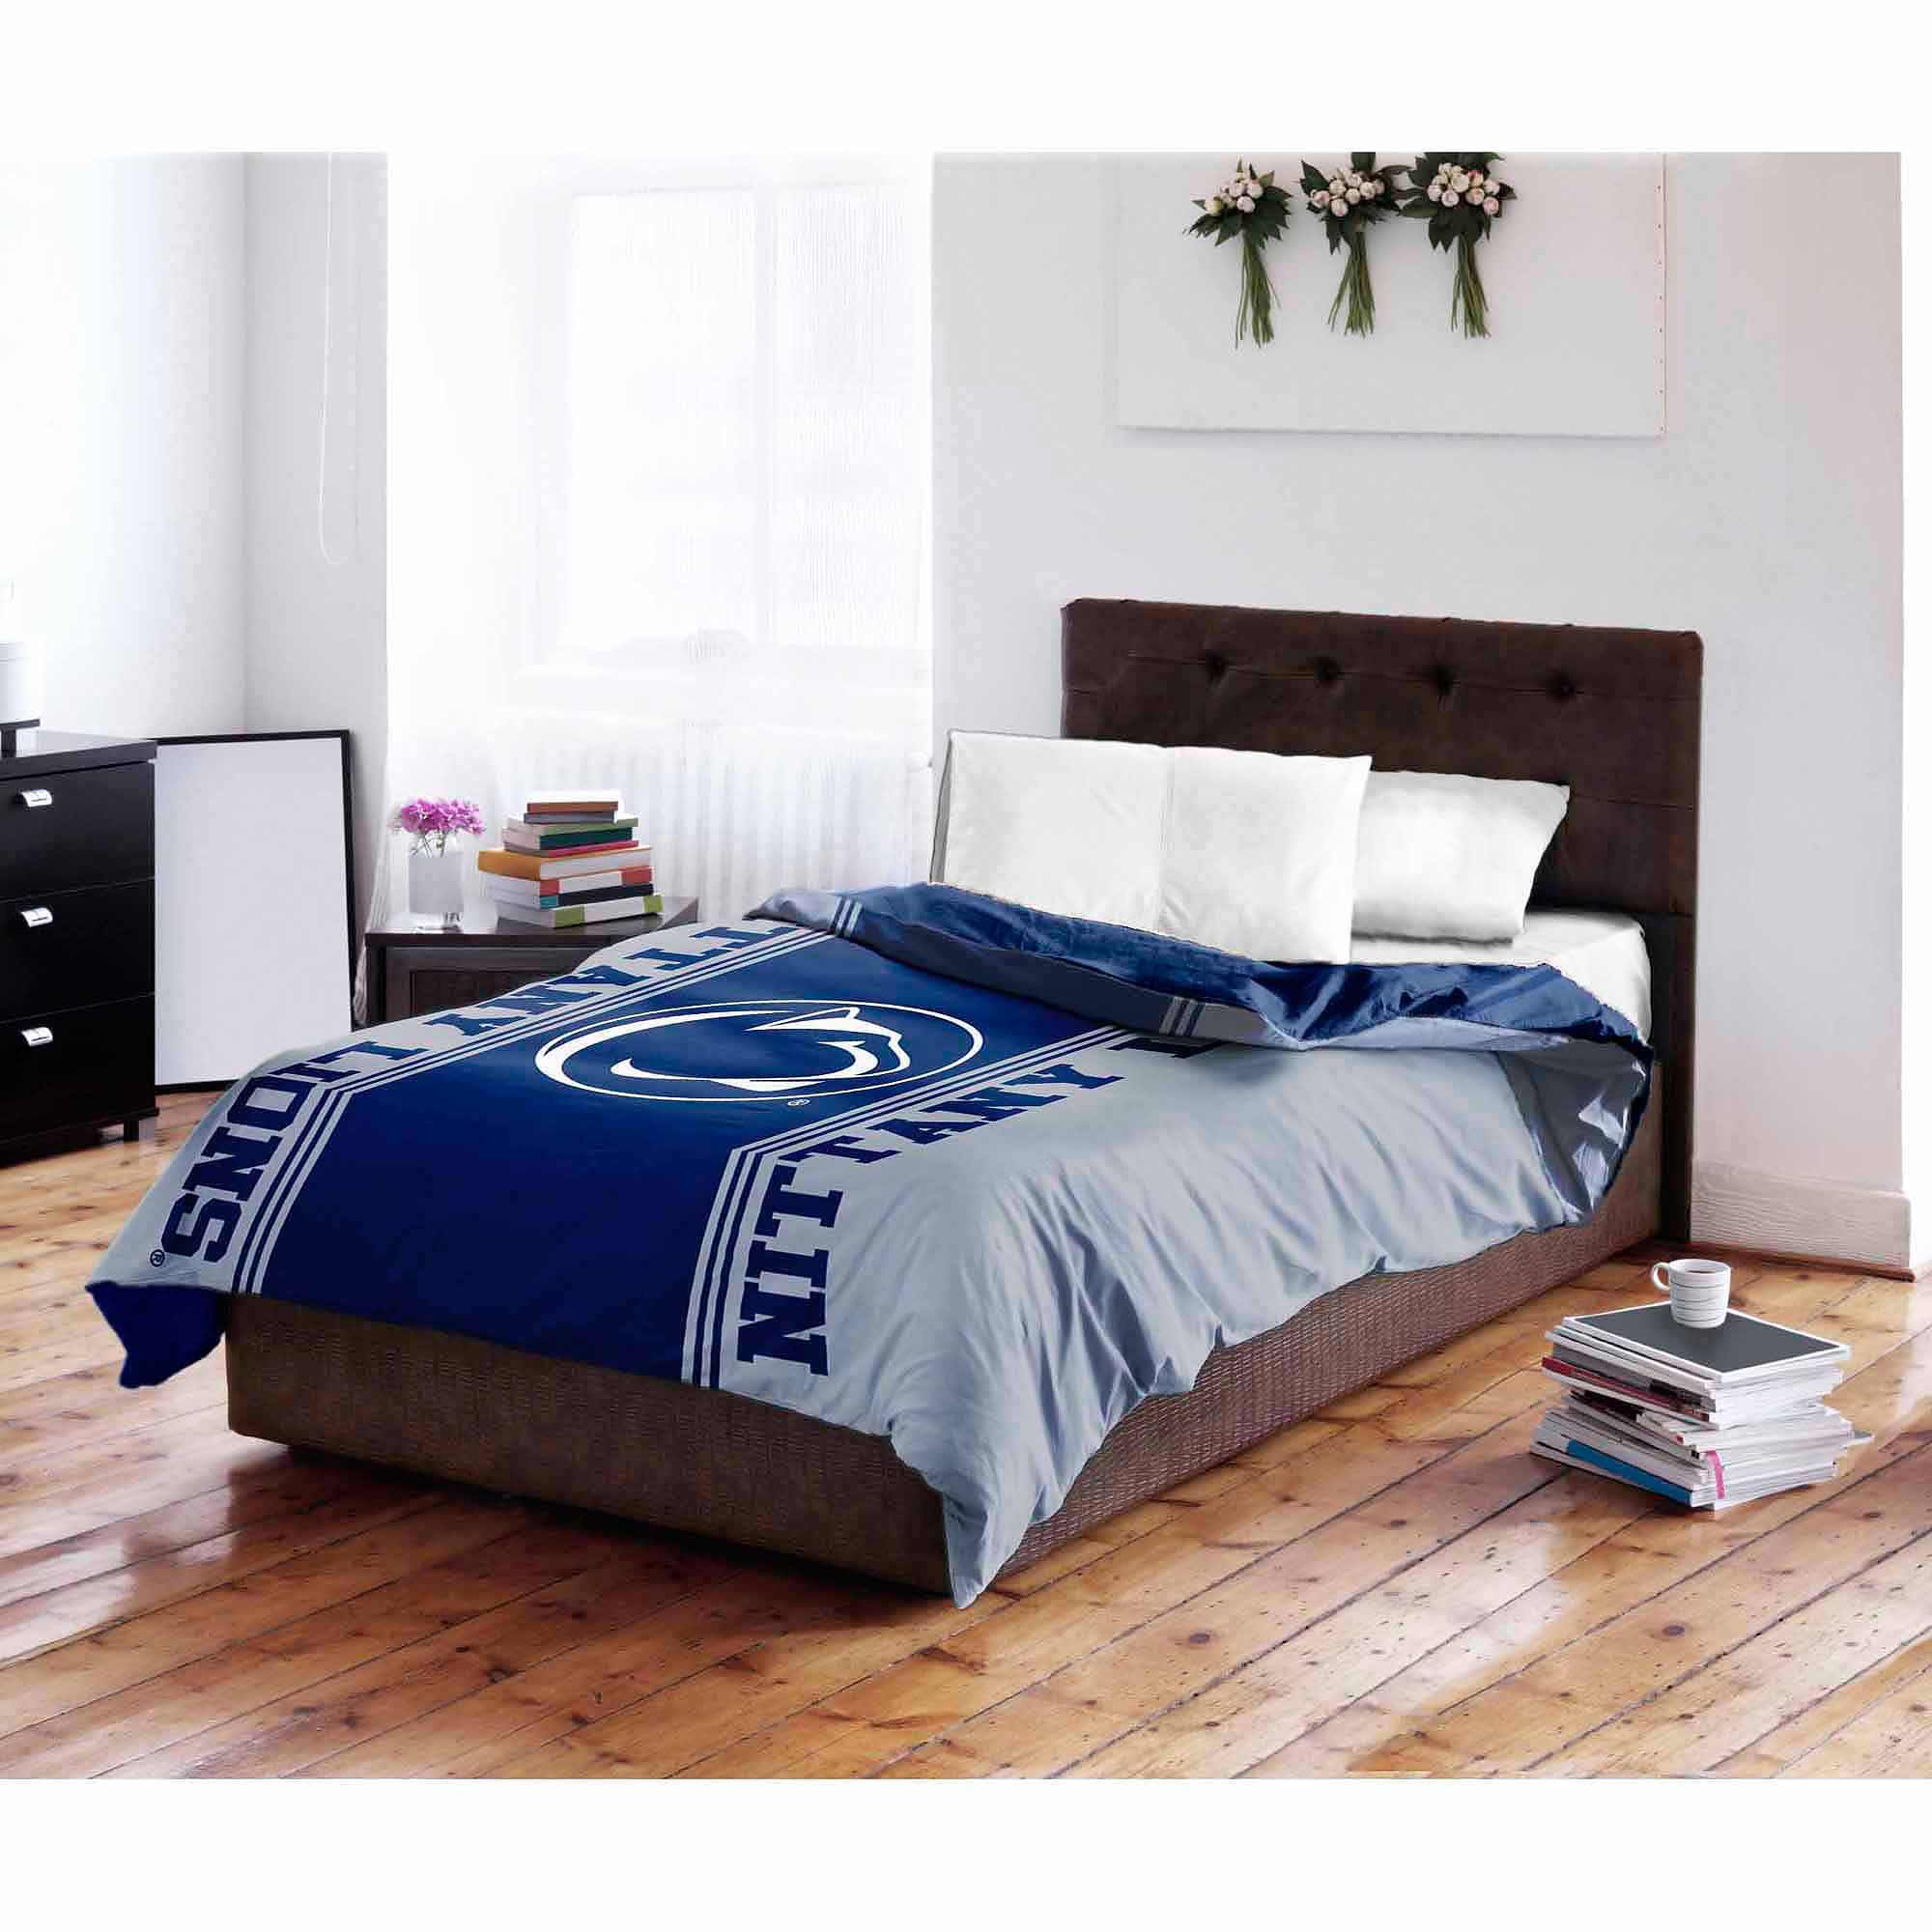 NCAA Penn State Nittany Lions Twin/Full Bedding Comforter